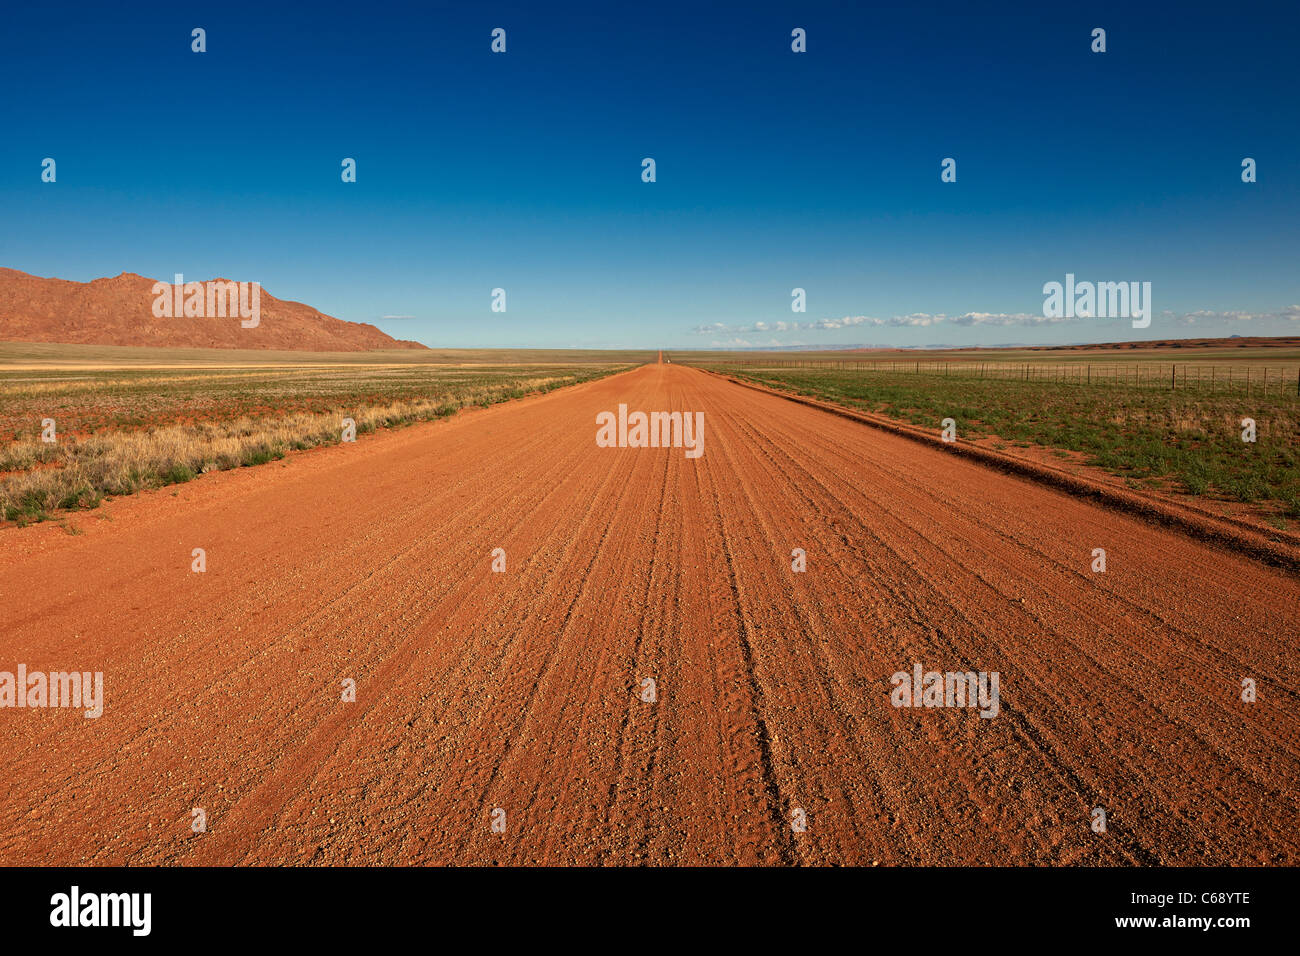 straight deserted gravel road in desert landscape, most beautiful secondary road of the world D707, Namibia, Africa Stock Photo